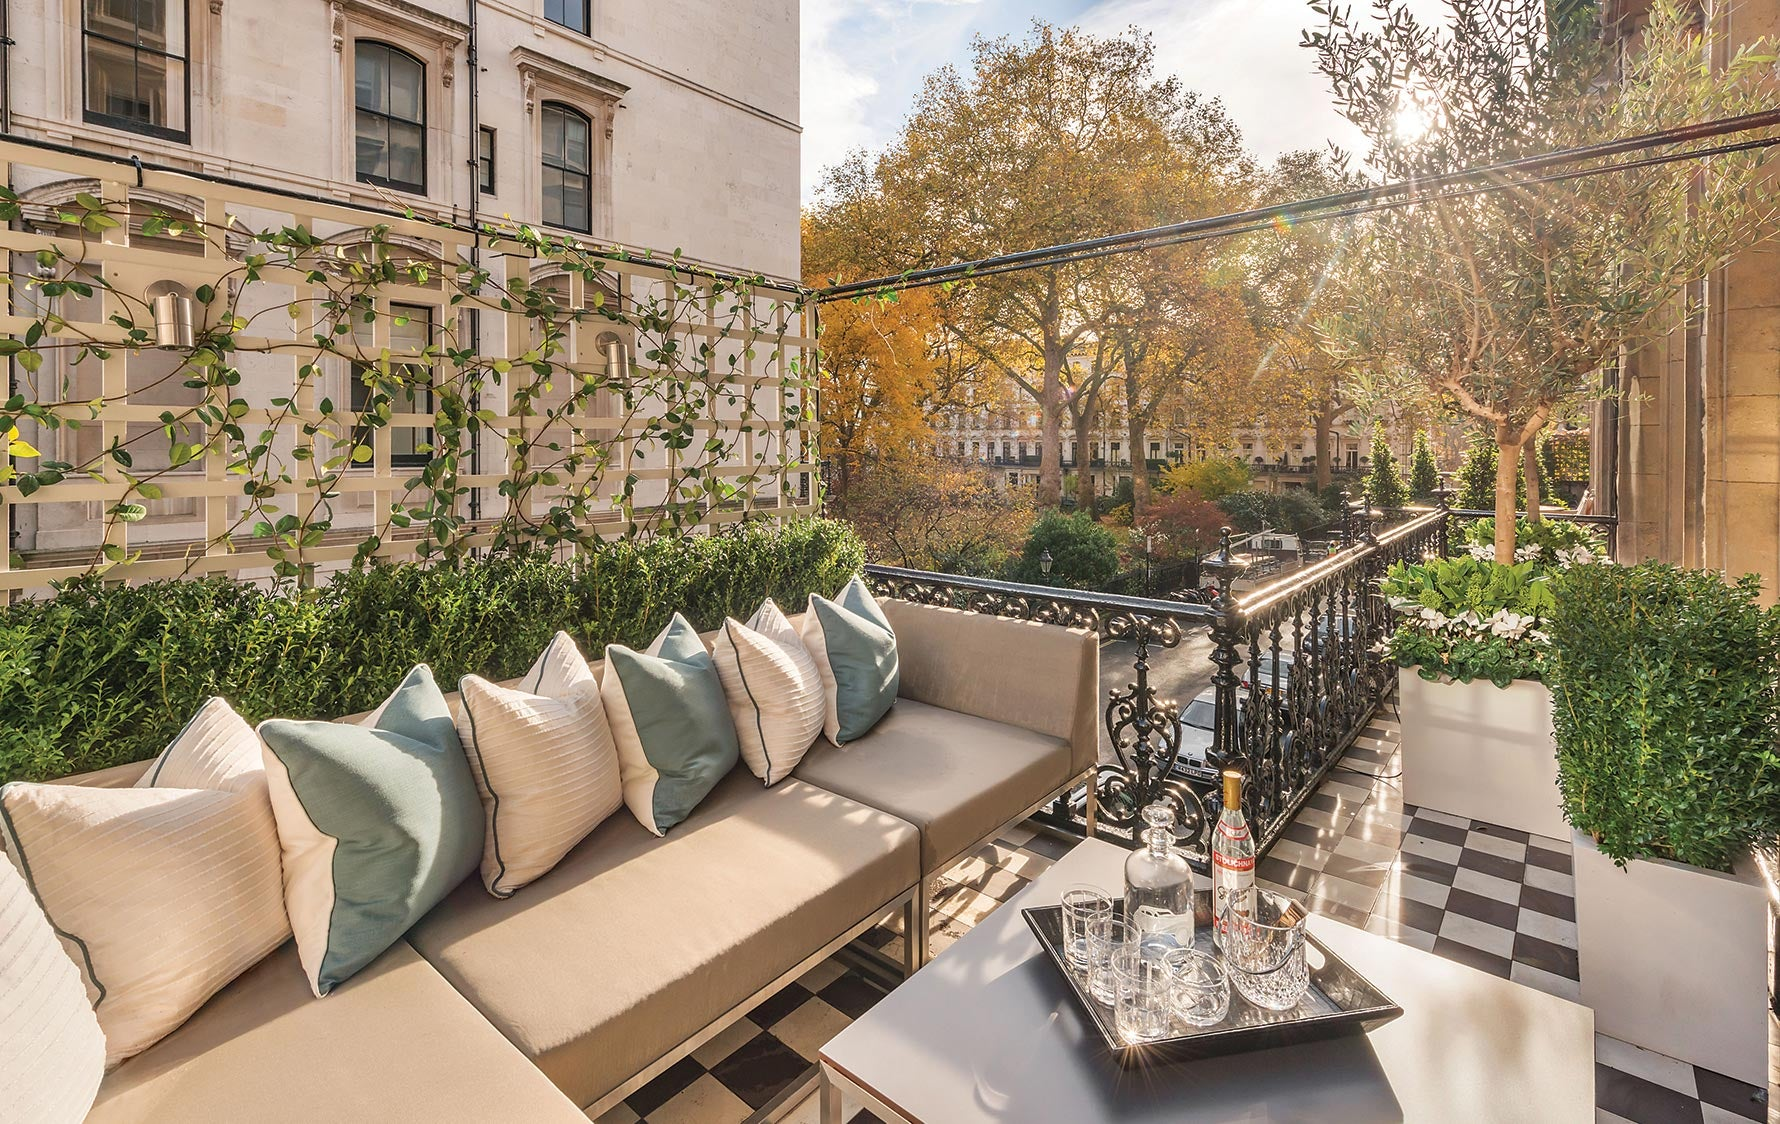 London Terrace, Outdoor Space Ideas |Katharine Pooley | Read more in The Luxurist | LuxDeco.com